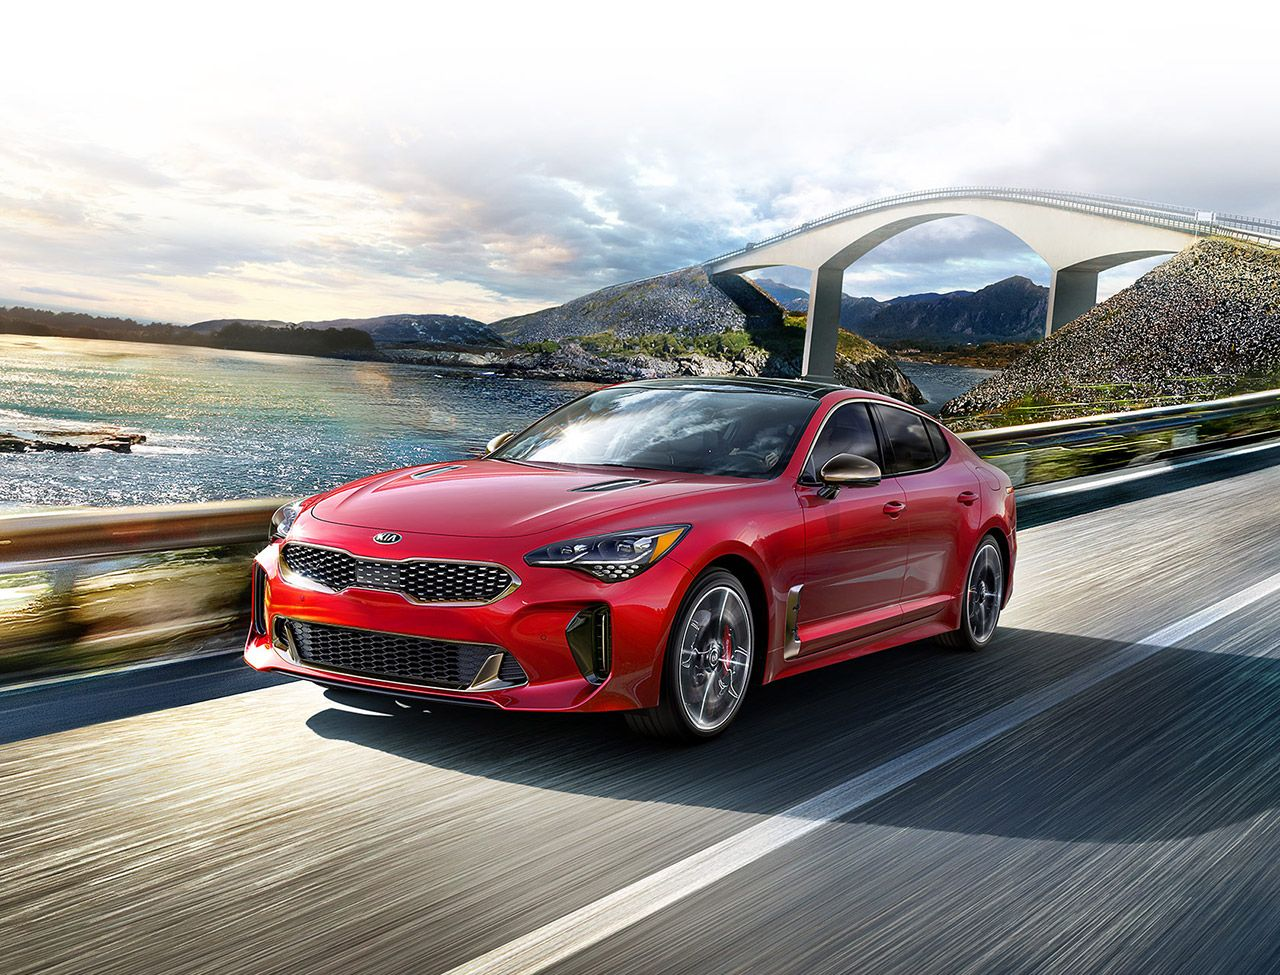 2019 Kia Stinger Sports Sedan Kia Stinger Sports Sedan Sedan